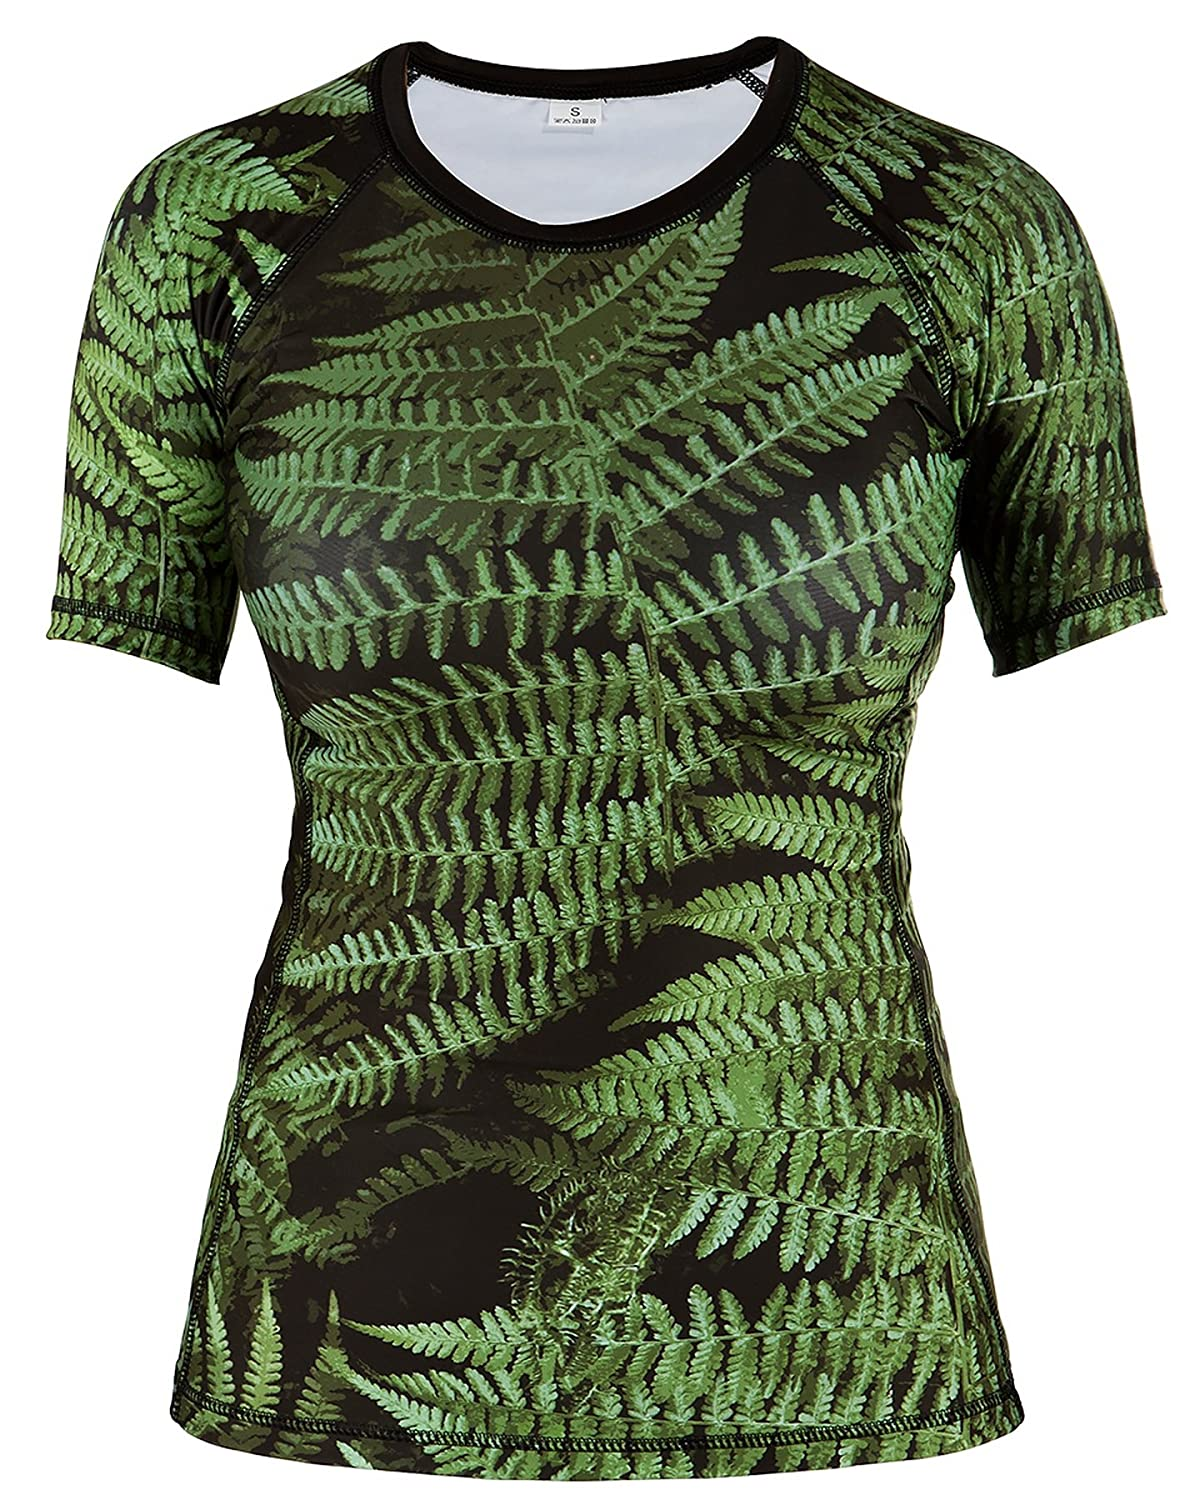 Rule Out Short Sleeve Rash Guard Top. Damen. Gym. Taining. Sportswear. Running. Cycling. Forest. Fern leaves. Motivation. Women Colection. Kompression T-shirt. MMA Fightwear